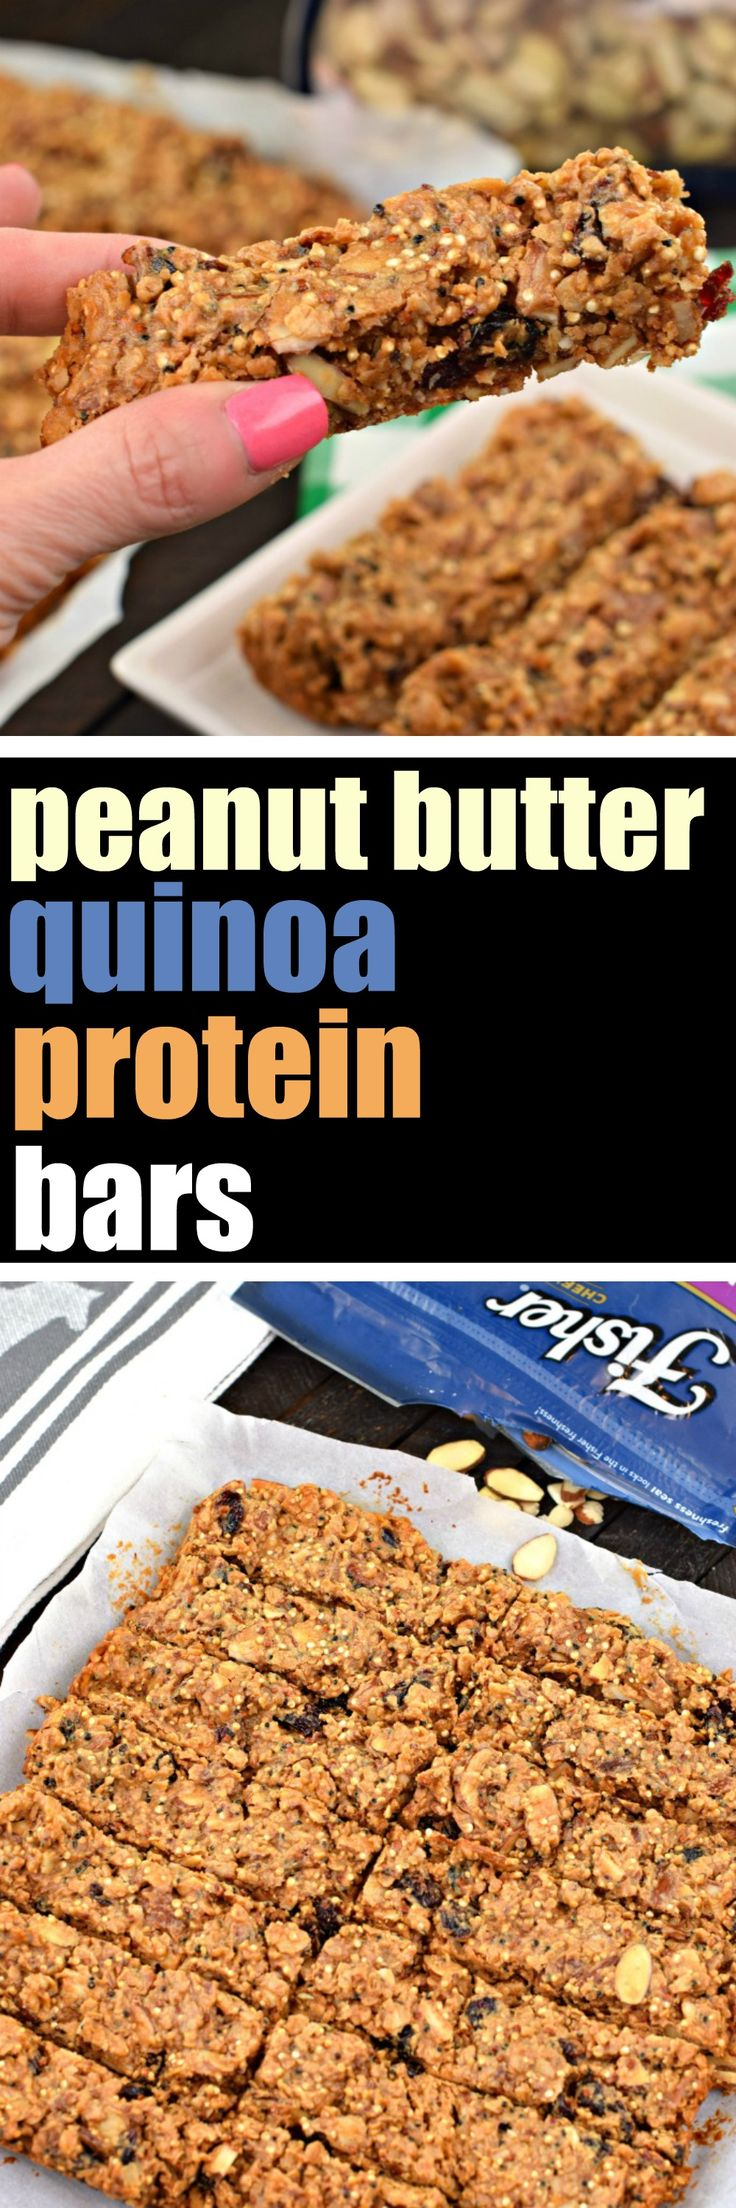 Chewy and nutty, these protein packed Peanut Butter Quinoa Protein Bars are the perfect post workout snack or breakfast on the go! Packed with flavor, and heart healthy almonds, you'll feel great choosing this as a snack or meal! #thinkfisher #hearthealth